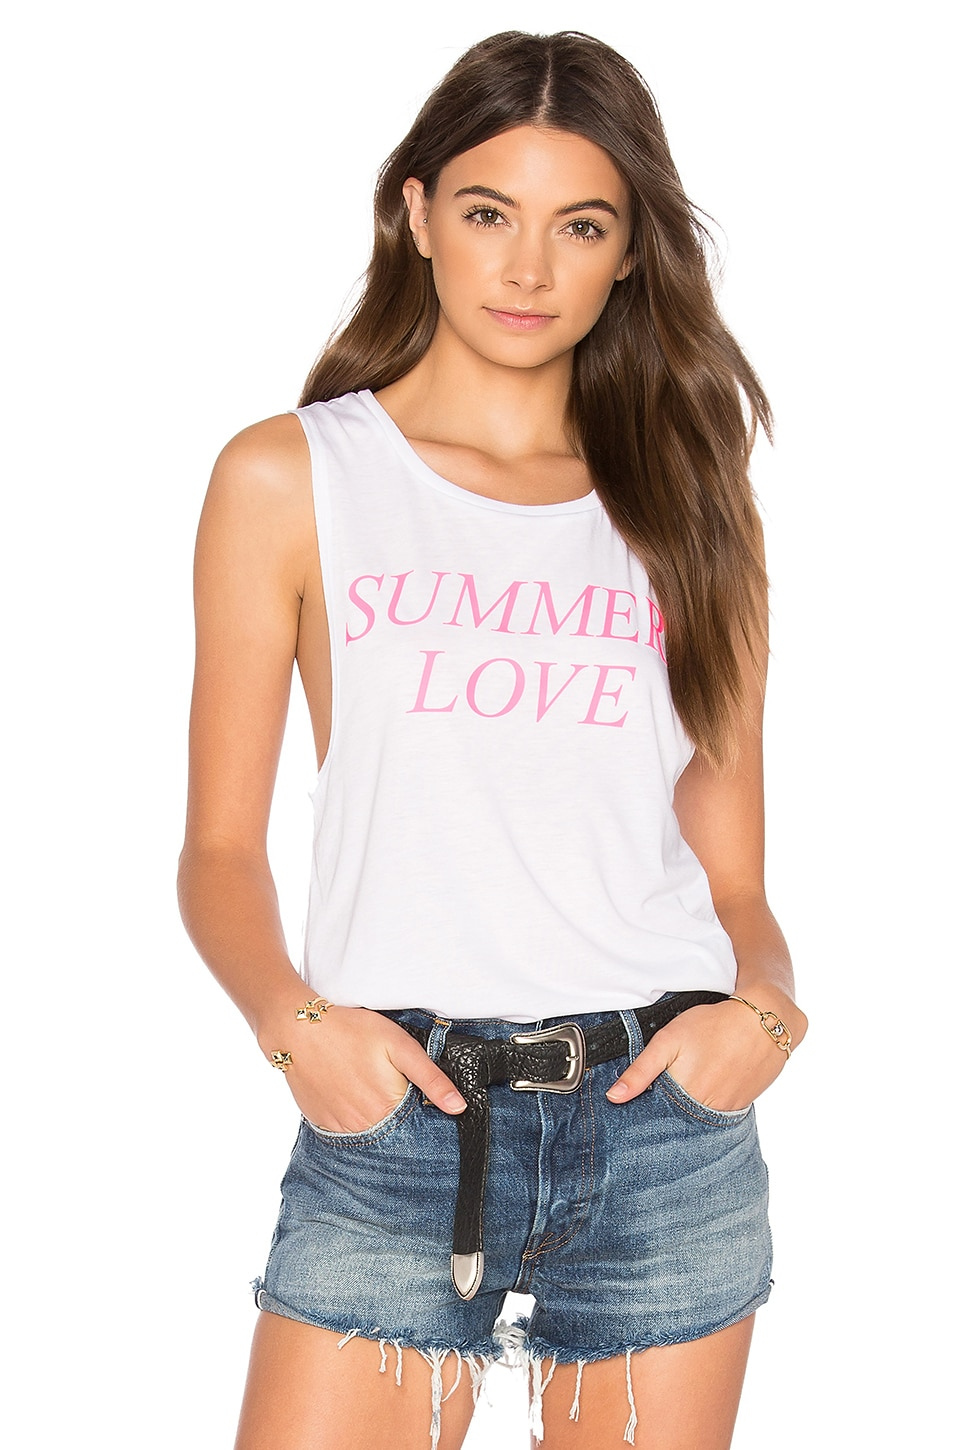 Summer Love Tank by Private Party